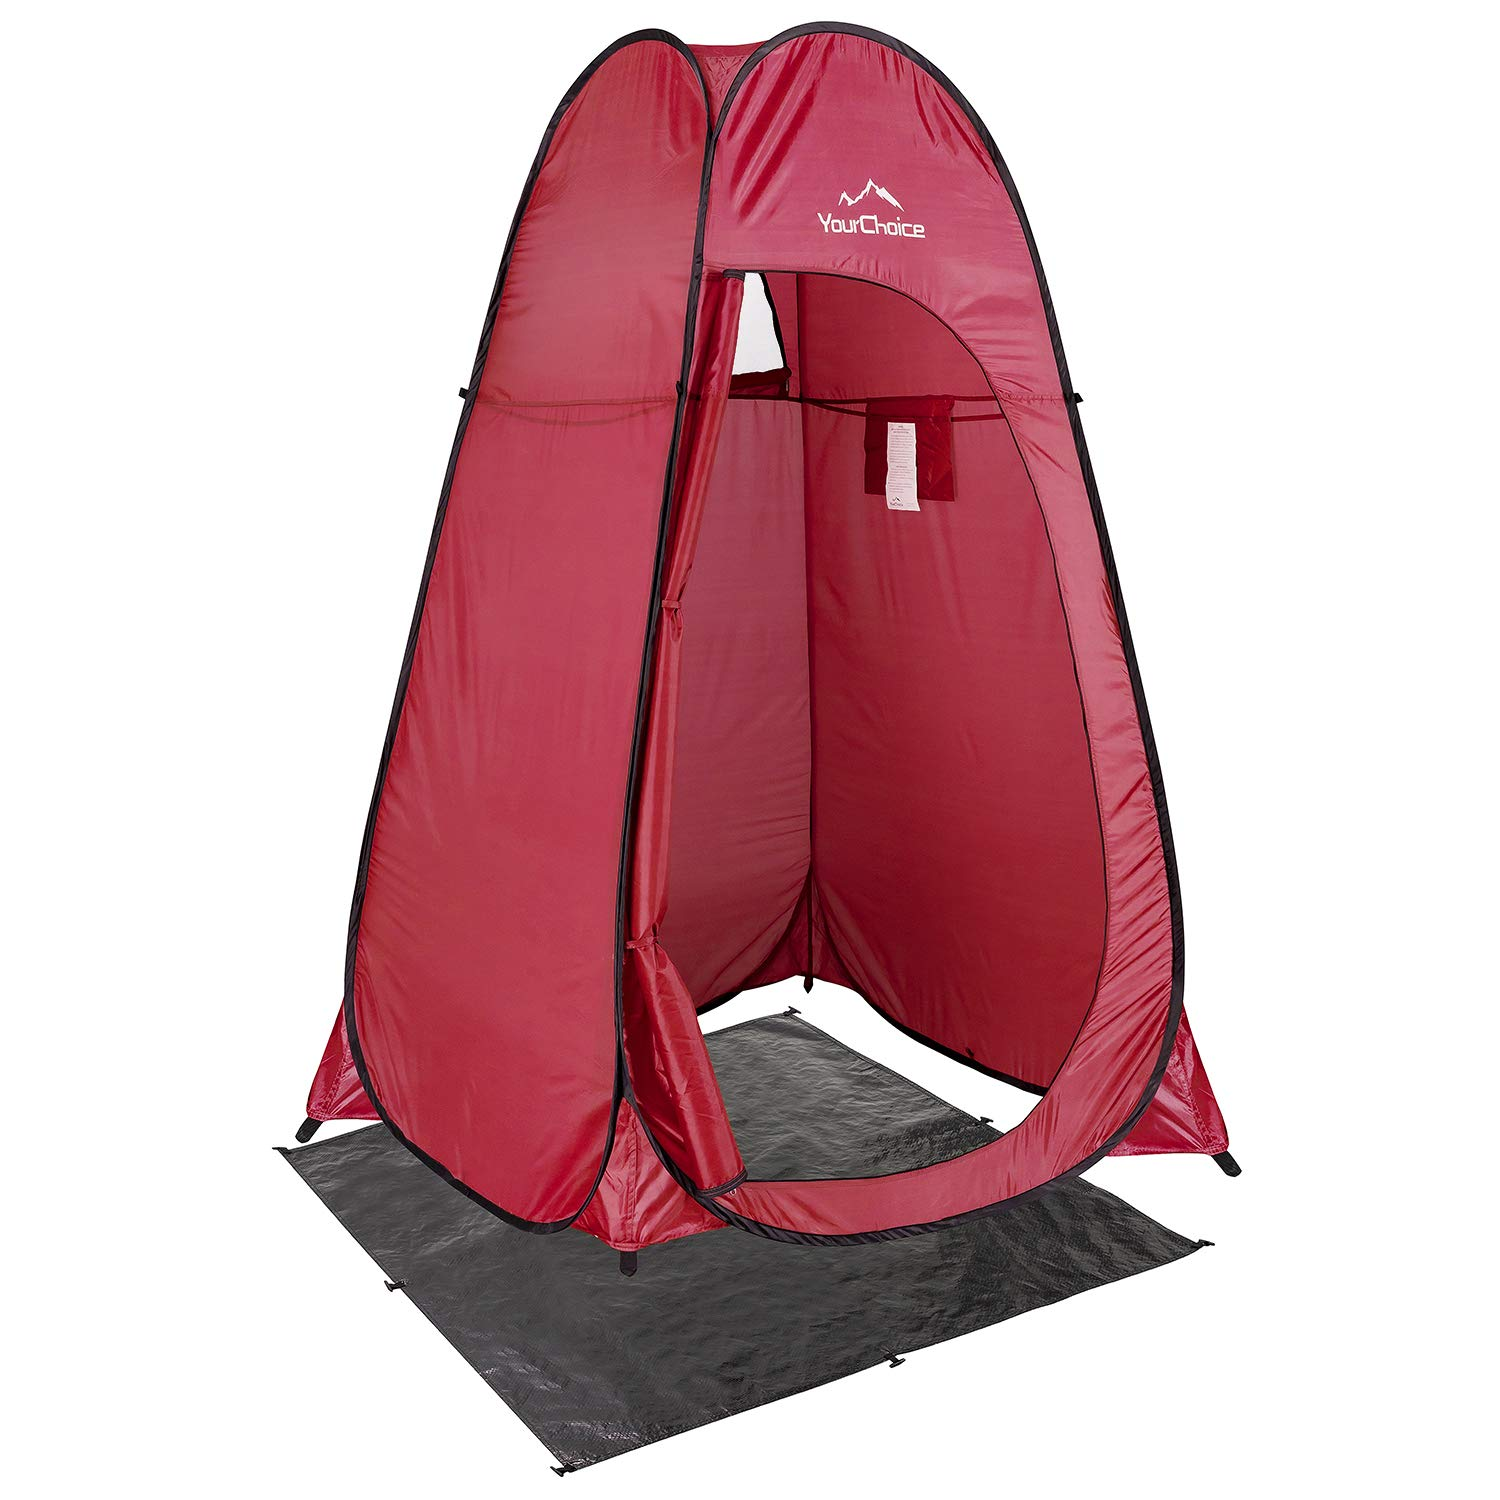 Your Choice Pop Up Tent, Portable Shower Toilet Changing Room Privacy Tent for Camping, Beach, Outdoor and Indoor - Color Red by Your Choice